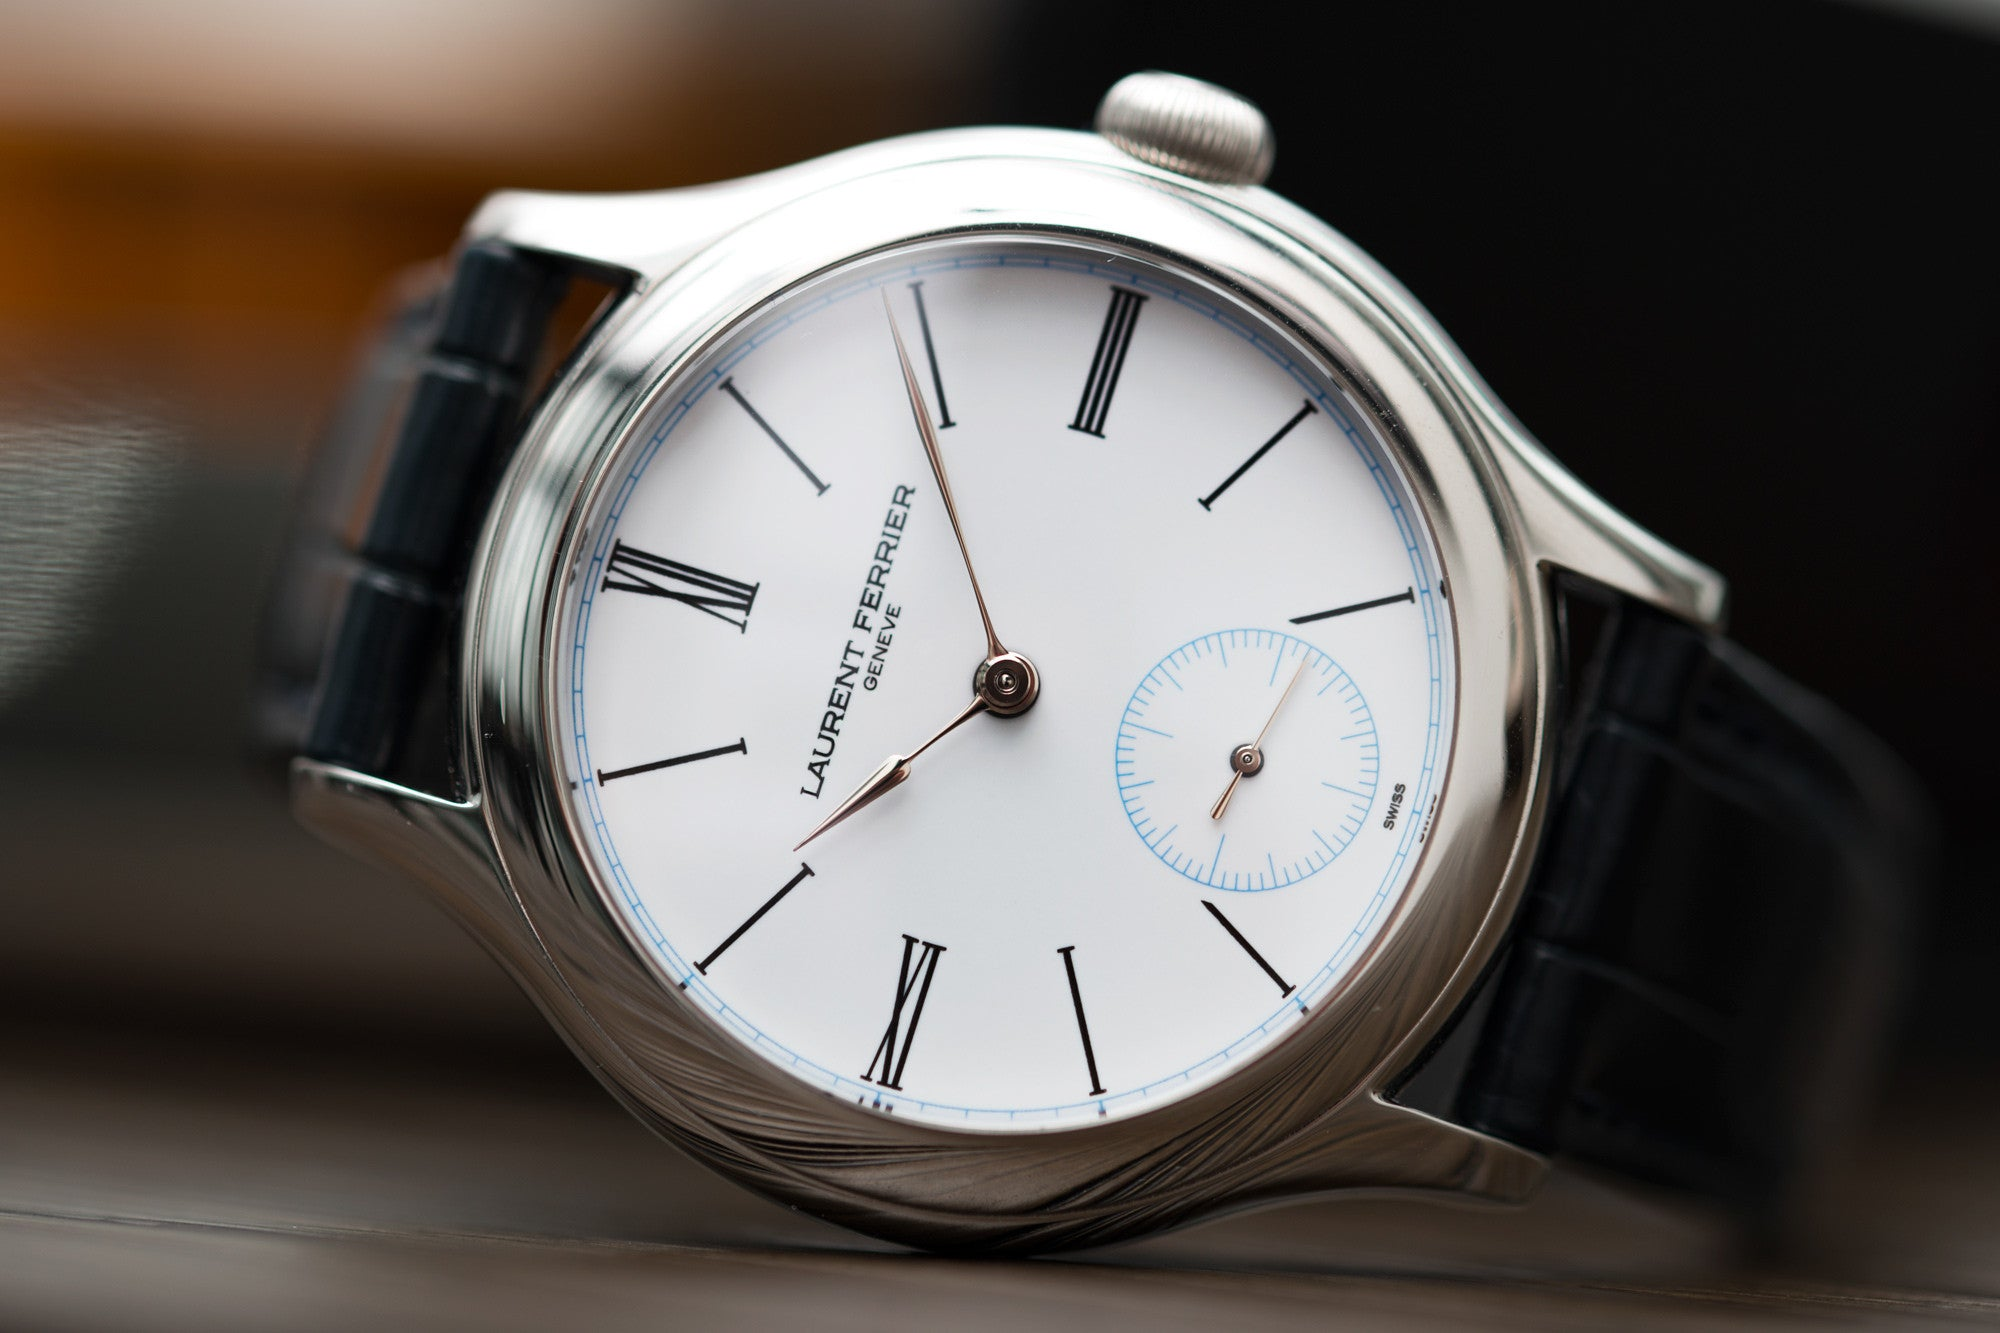 buy preowned Laurent Ferrier Galet Micro-rotor LCF006 platinum enamel dial limited edition watch for sale online at A Collected Man London specialist independent watchmakers